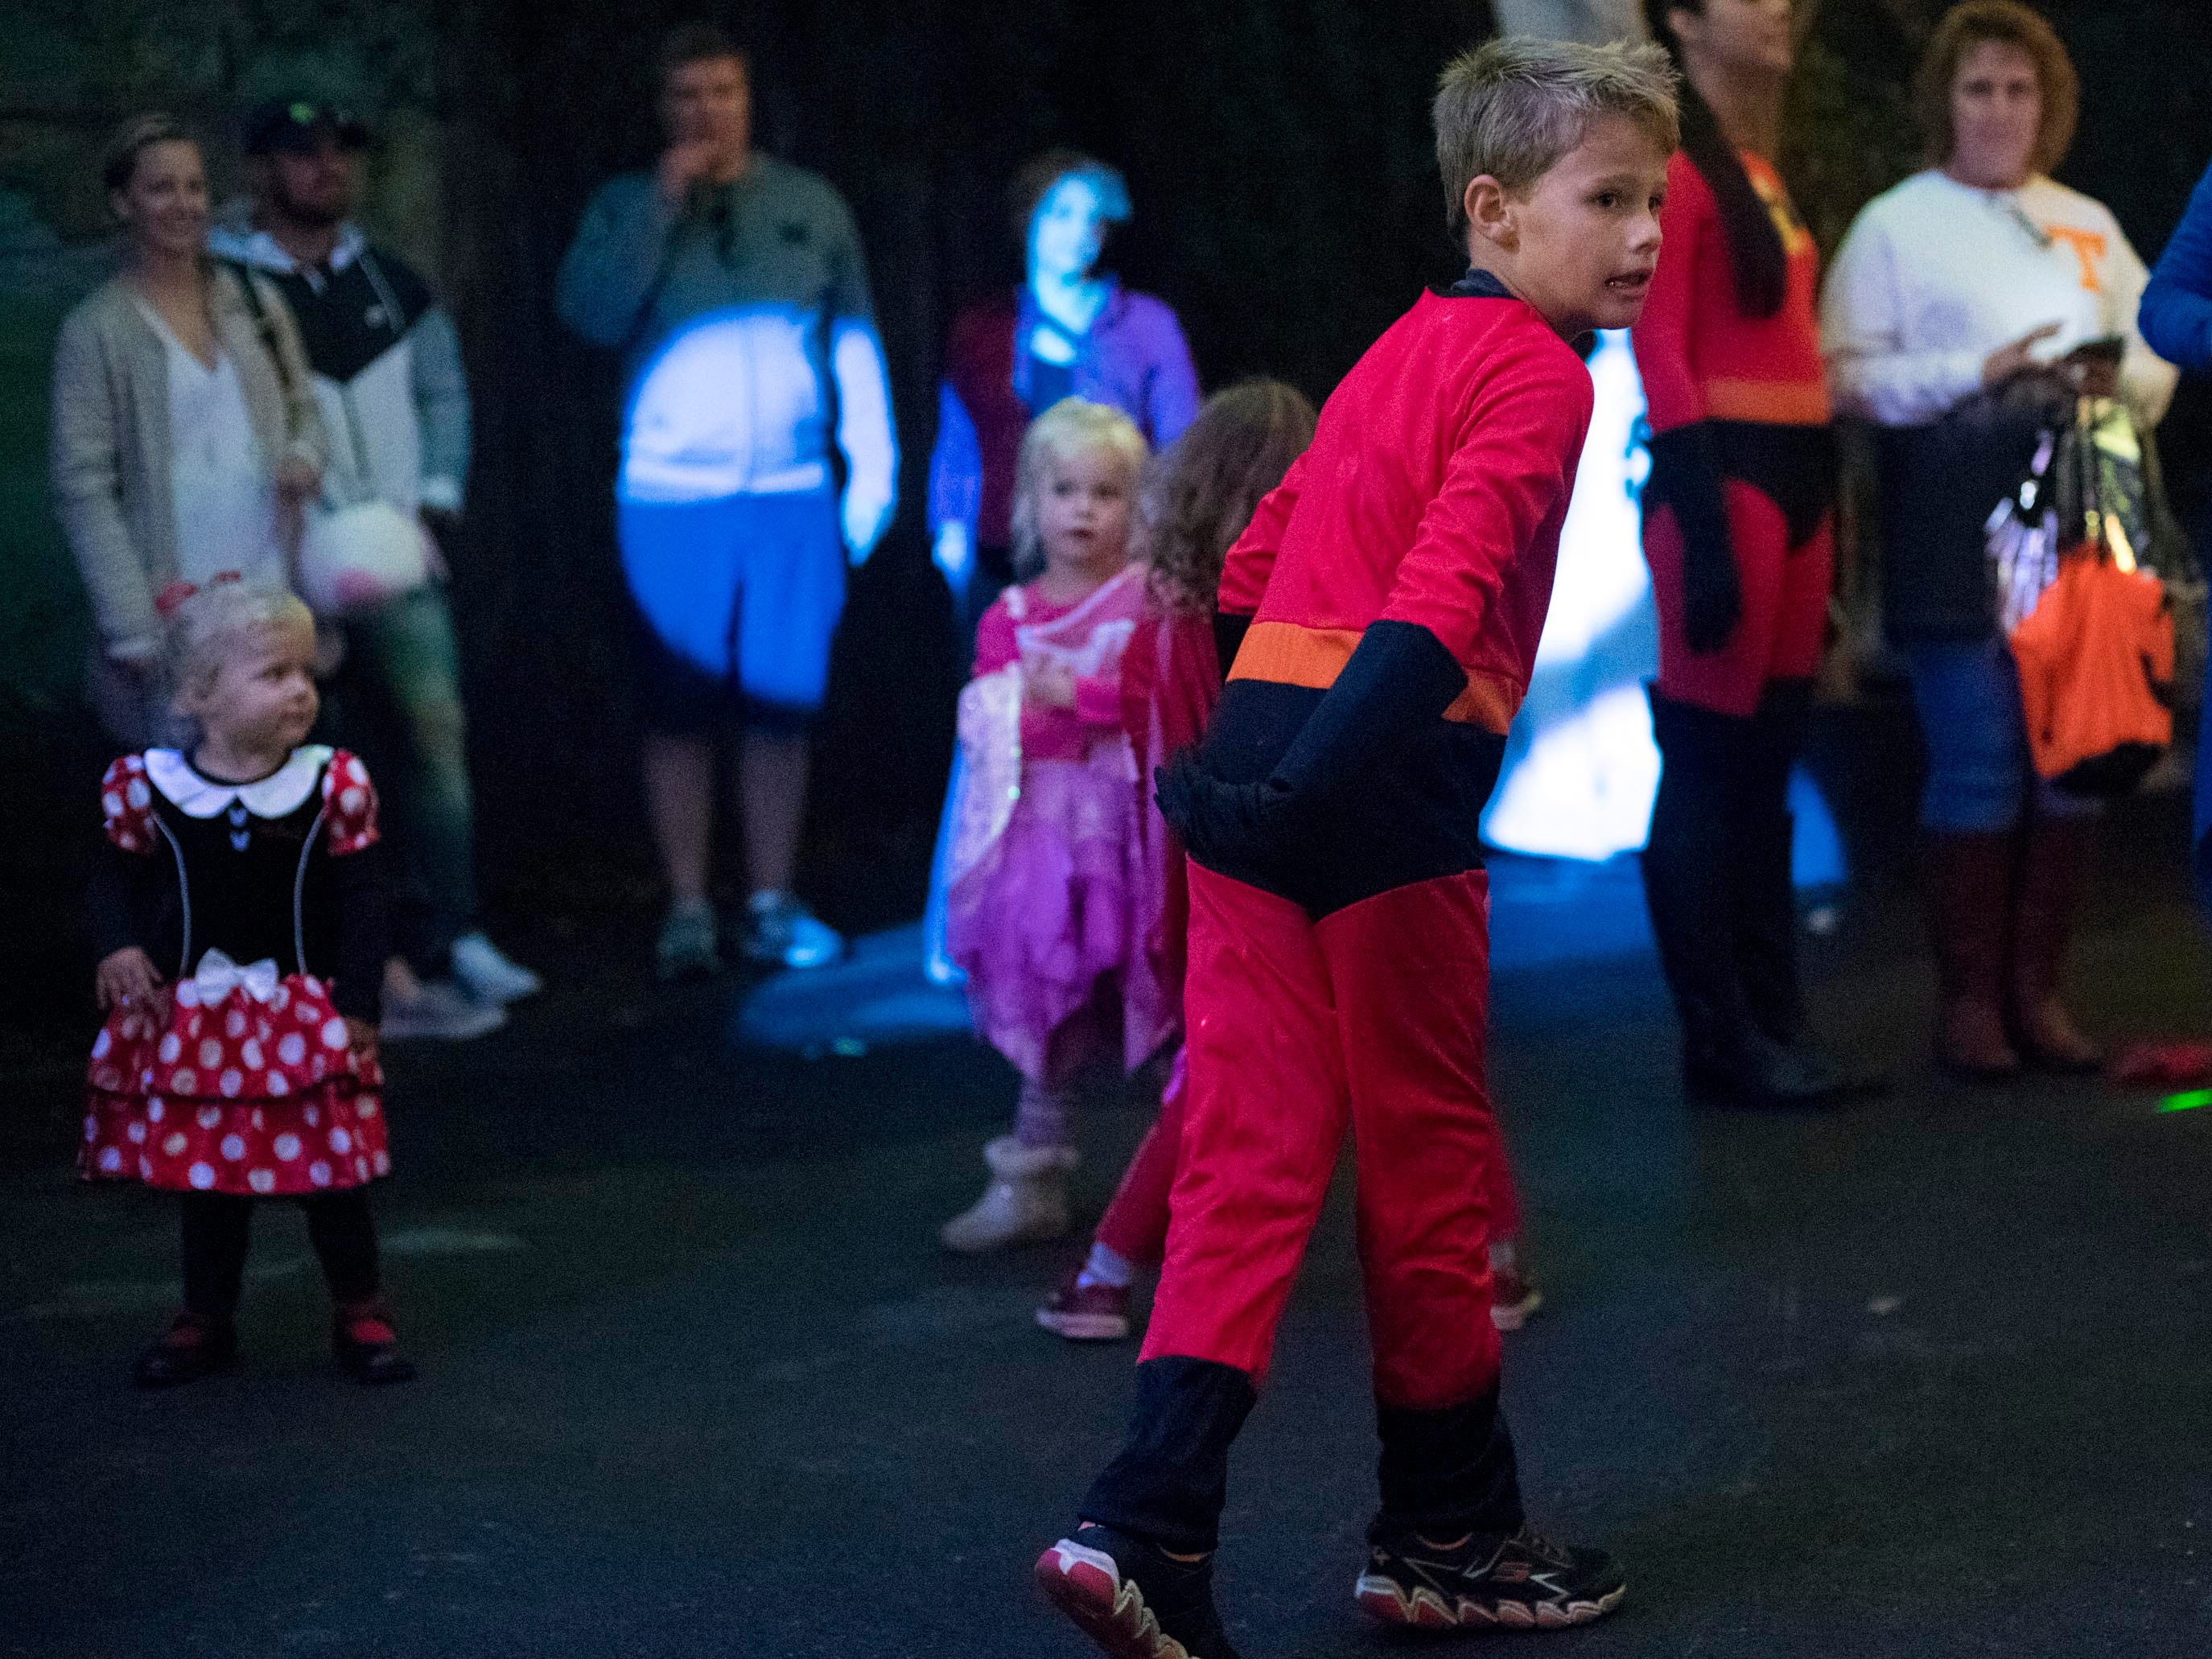 A Incredibles costumed trick-or-treater dancing at the Monster Mash dance party during Boo! at the Zoo on Saturday, October 20, 2018.